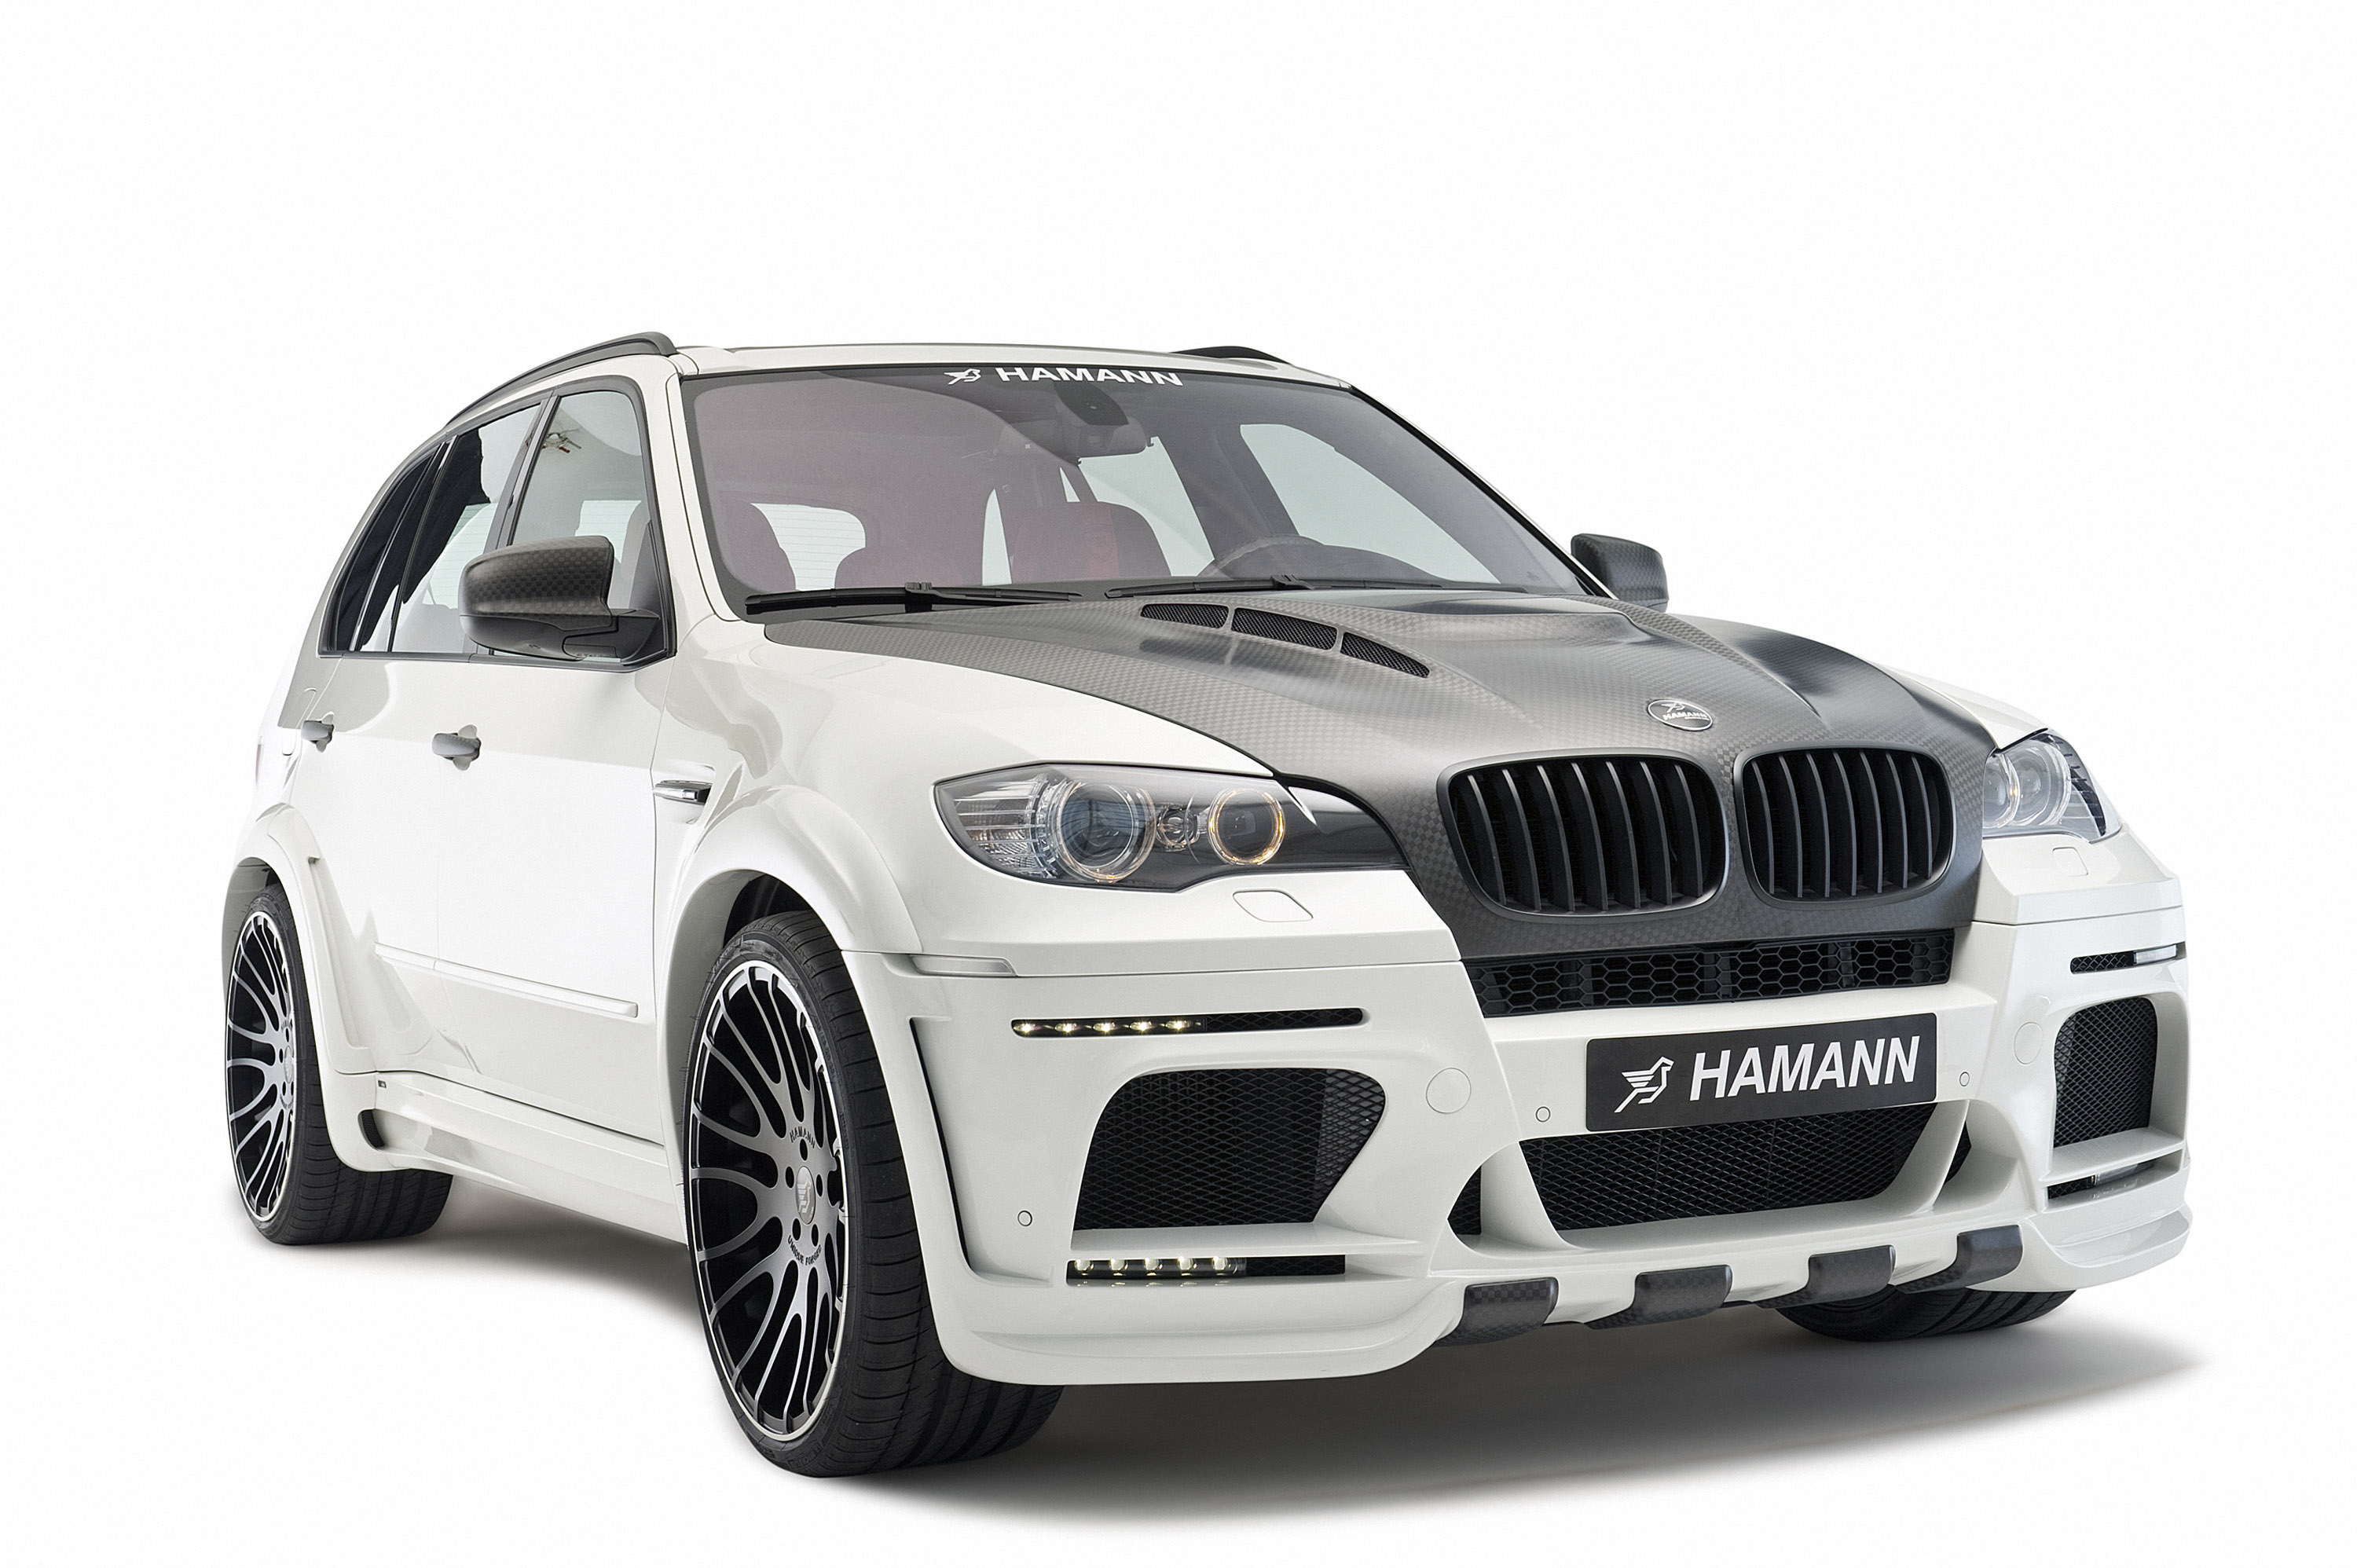 2010 Hamann BMW X5 M - Picture 45252